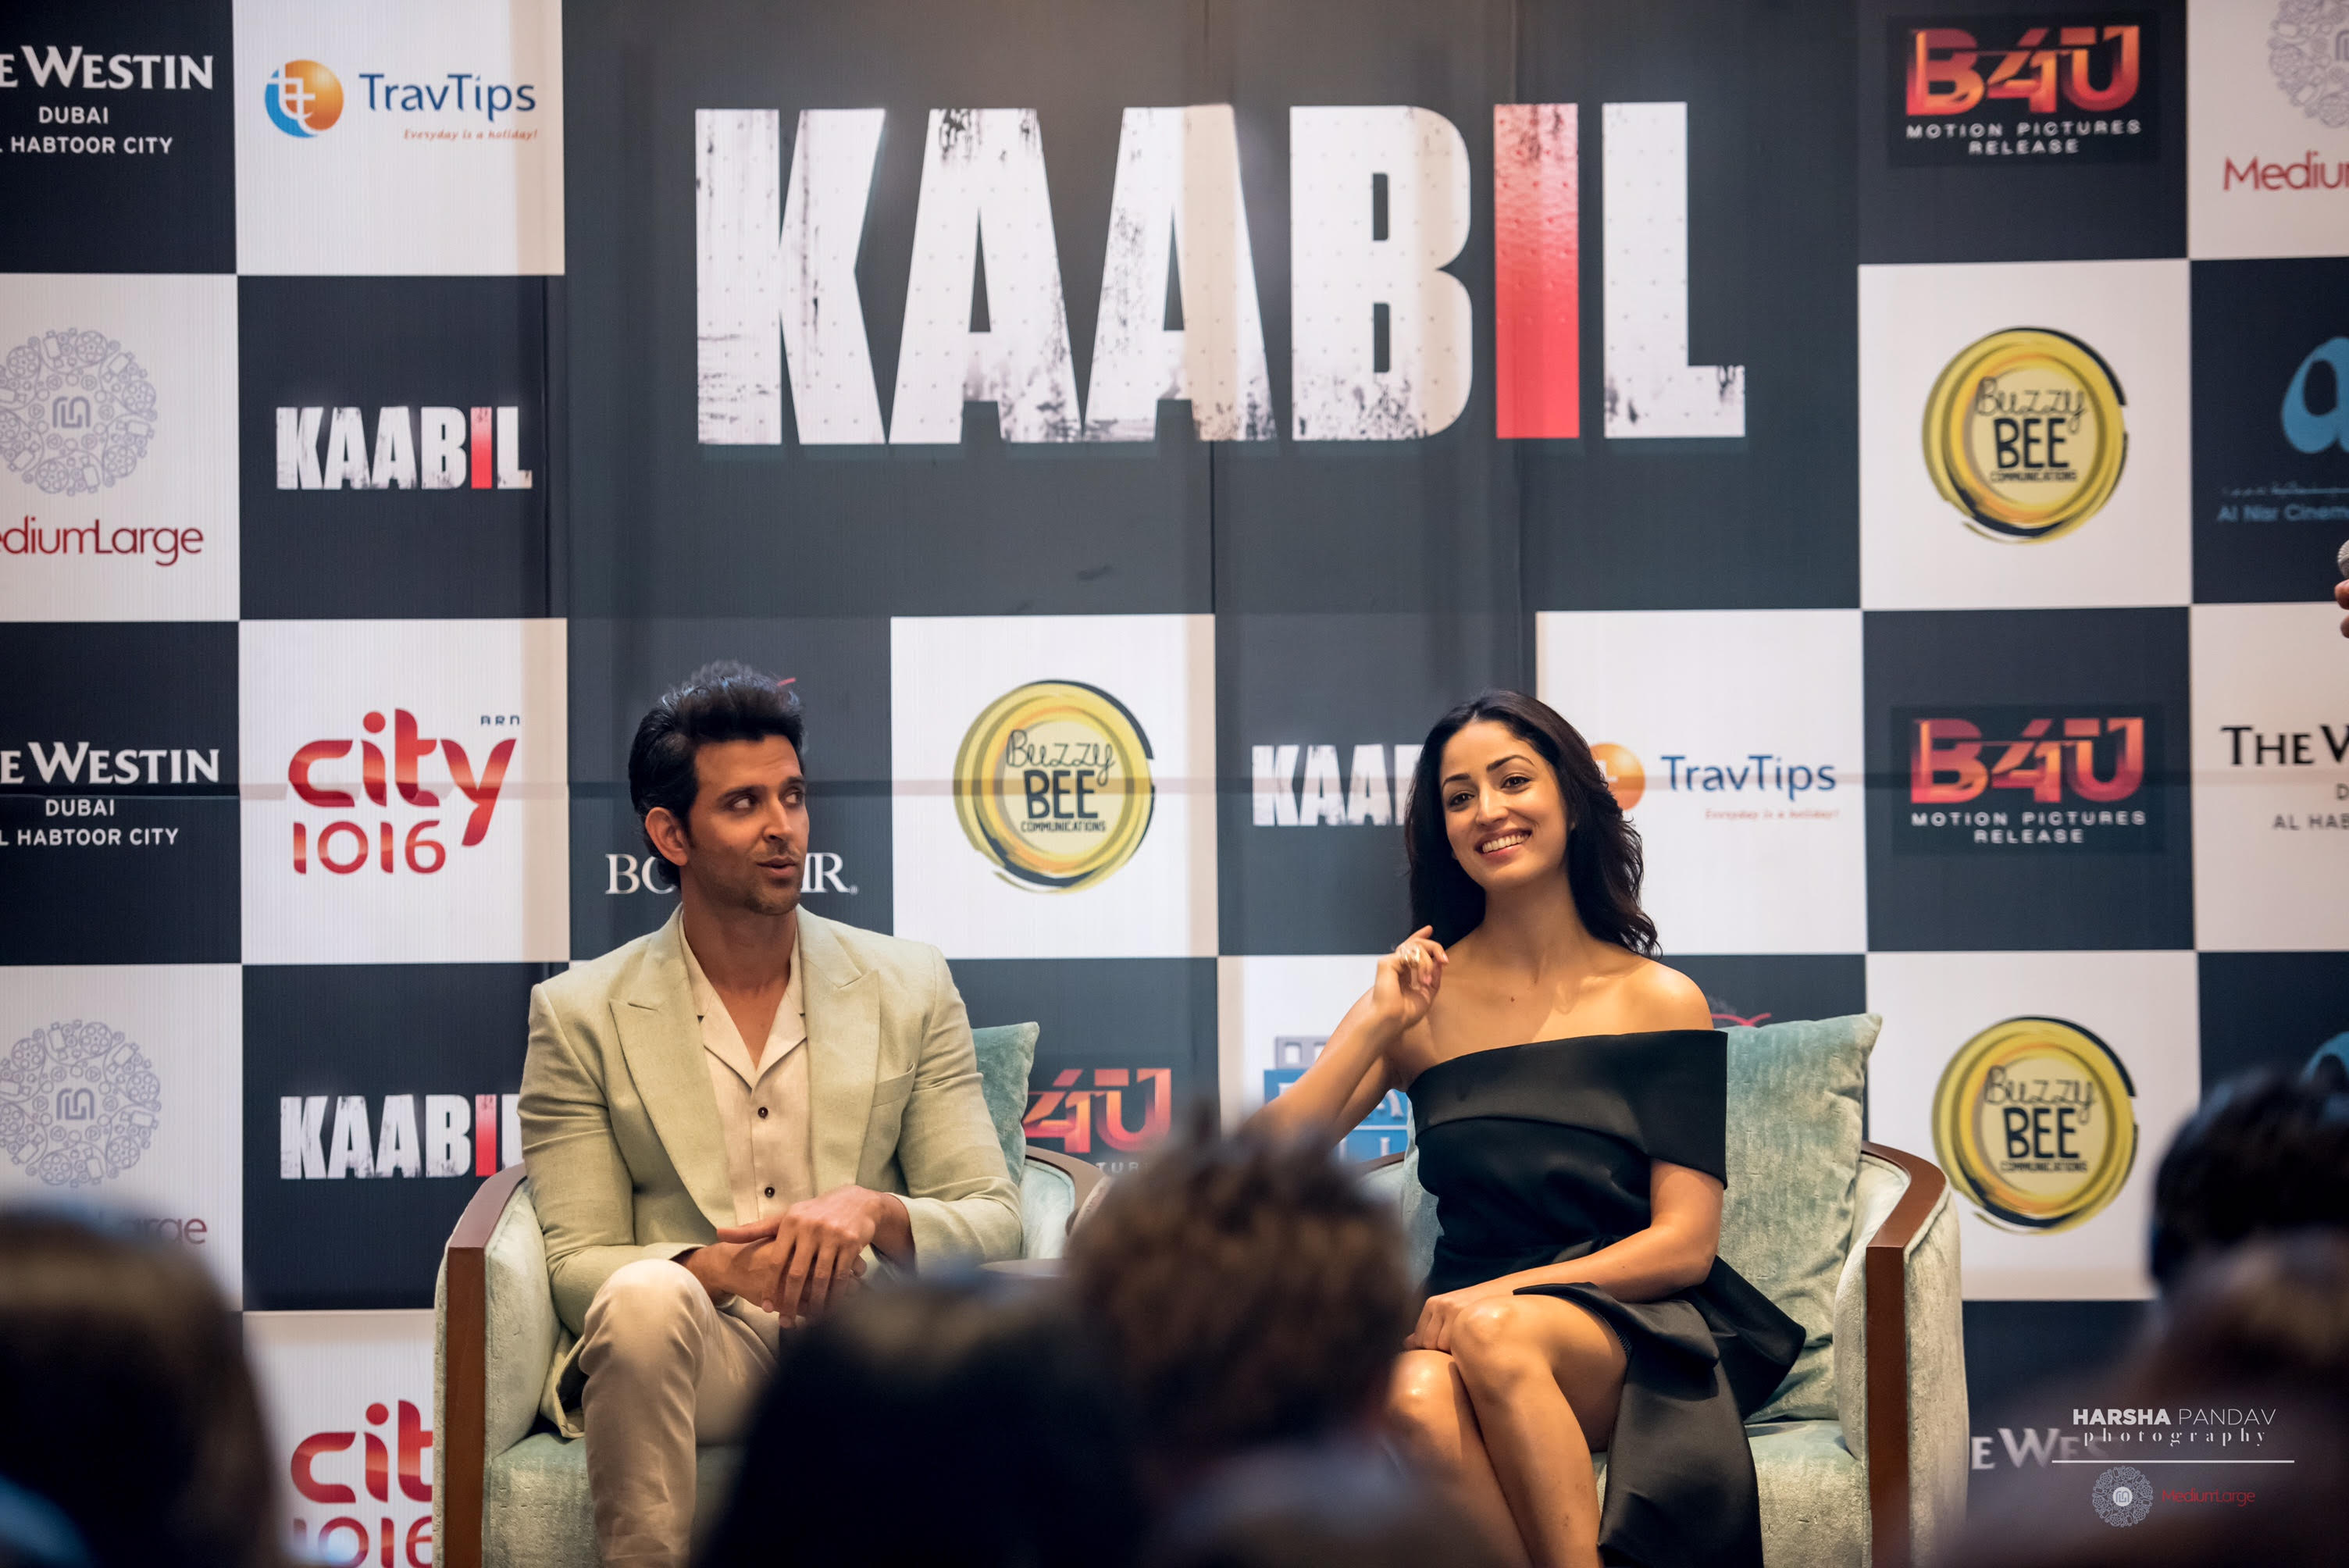 Hrithik & Yami take centre stage in Dubai